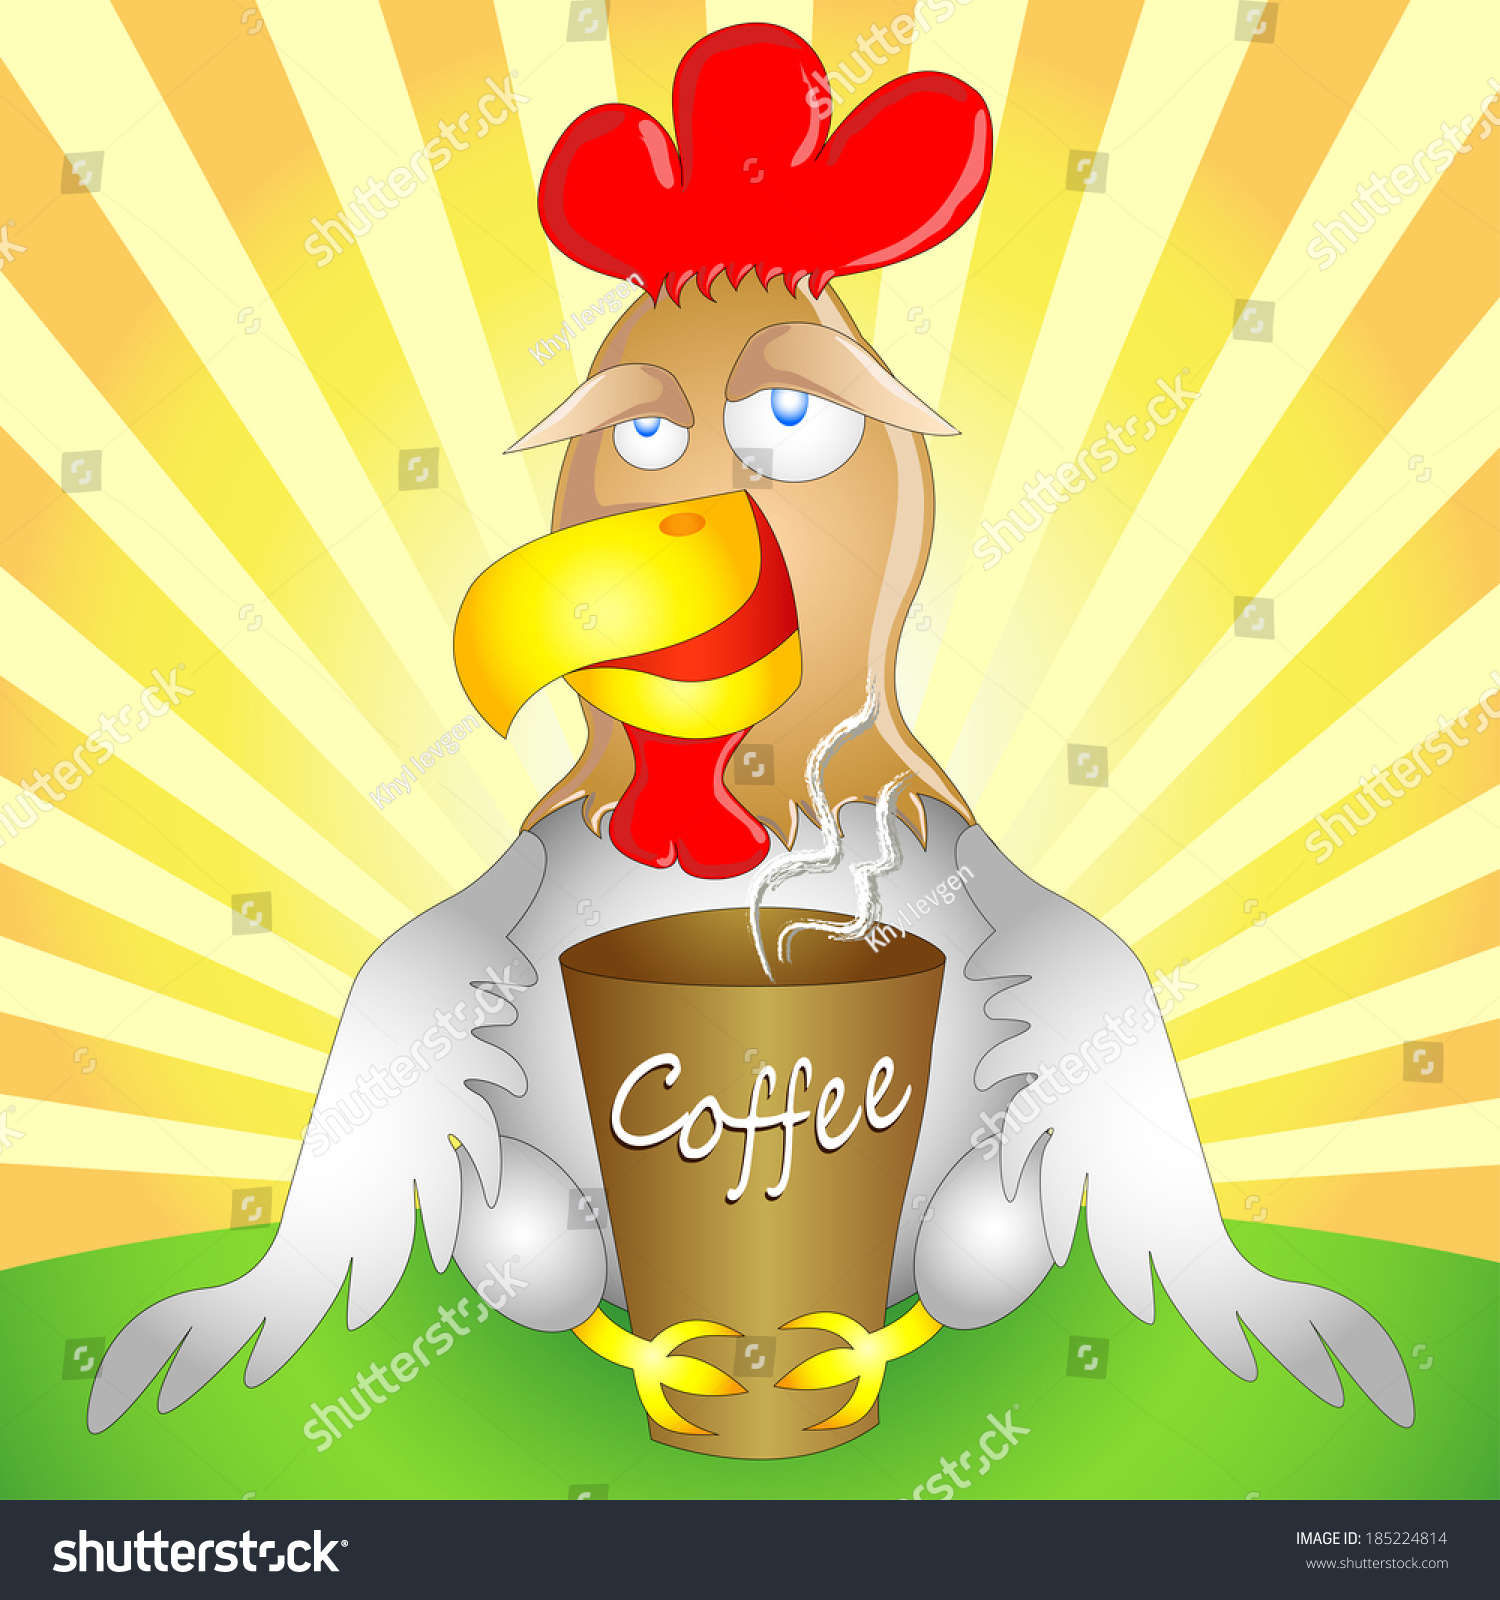 Funny Cock Pics funny cock cup coffee on morning stock image | download now